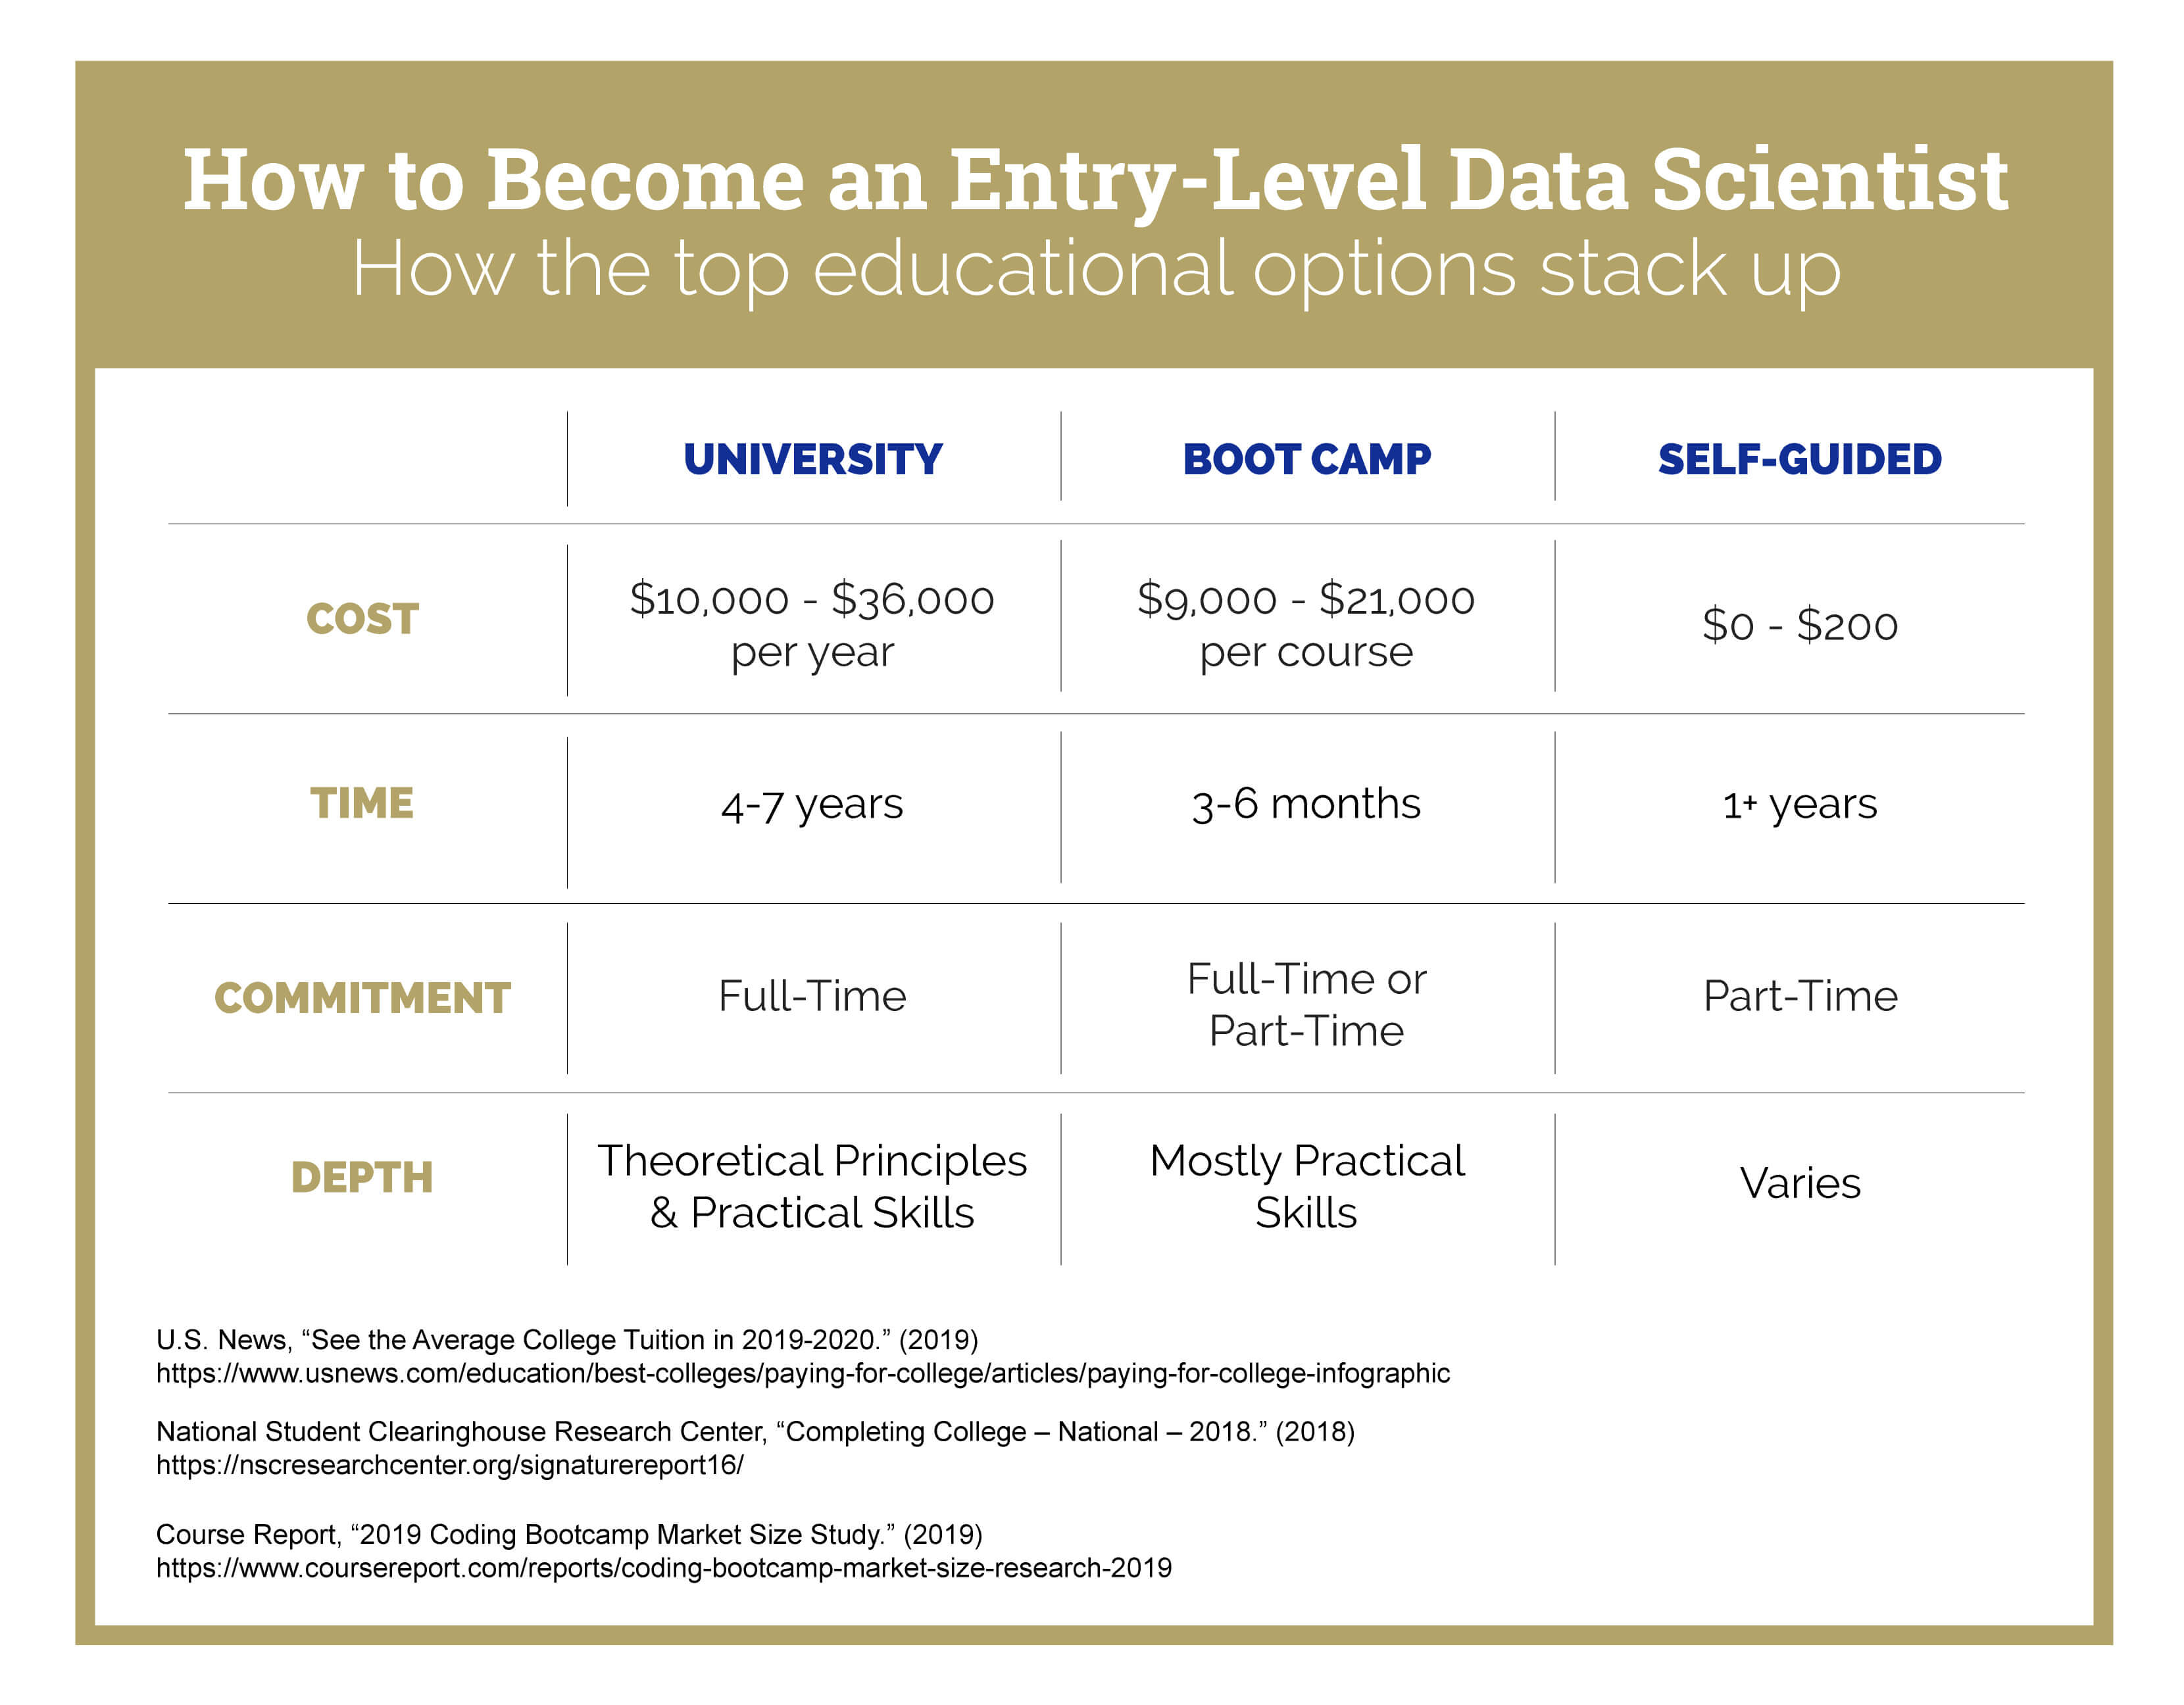 A chart that shows how to become an entry-level data scientist by comparing the top educational options.